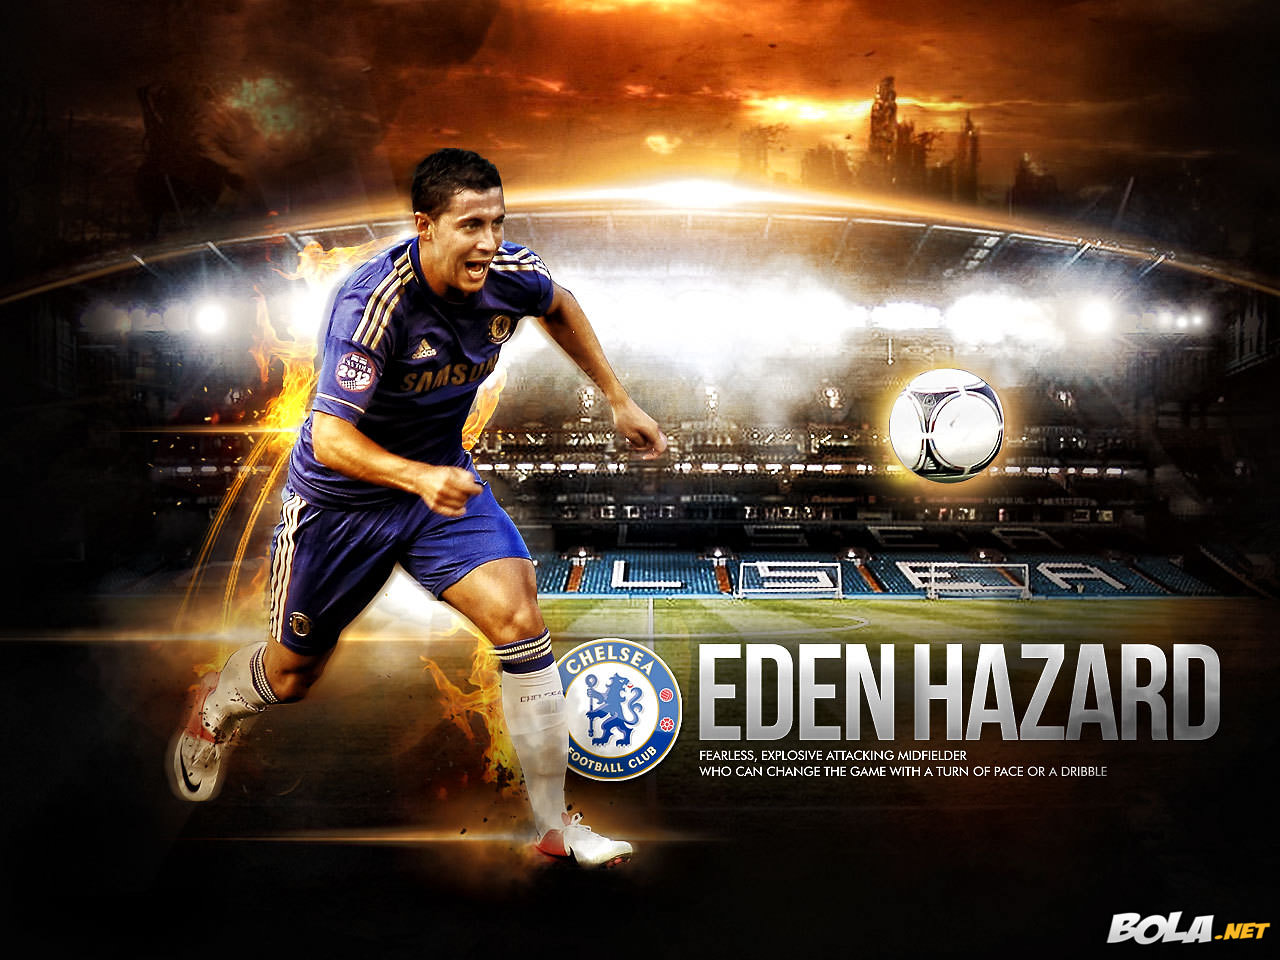 Wallpaper Eden Hazard – Chelsea Period (1) - Eden Hazard's Website ...